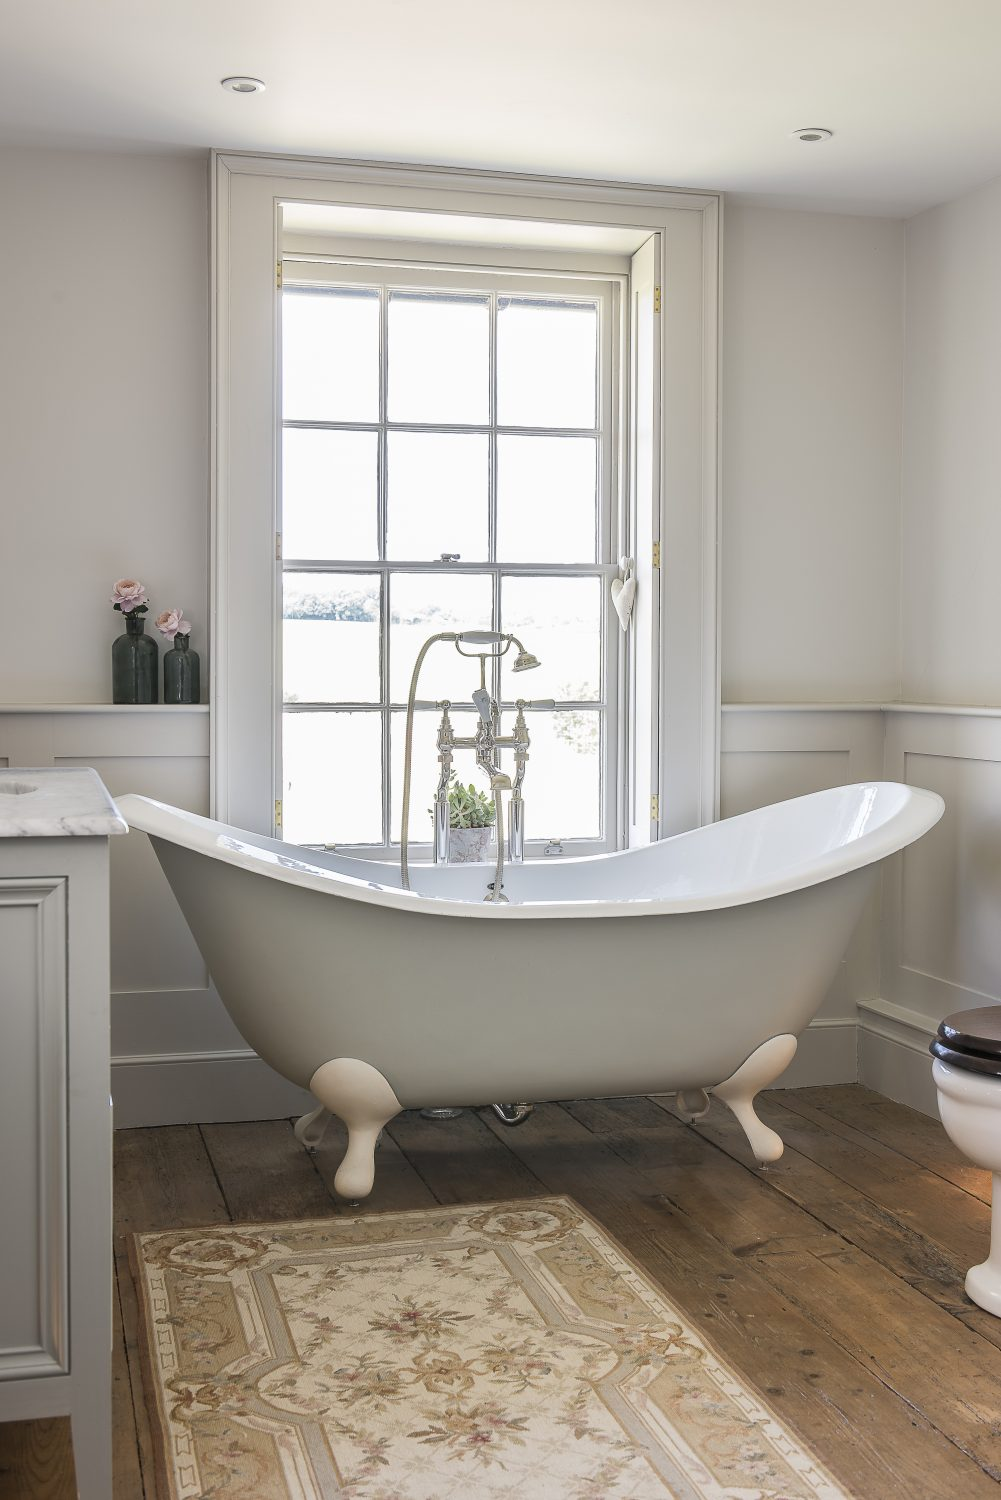 The slipper bath, from Tenterden Bathroom Shop, has views through the sash window over the horse paddocks. Wooden panelling was added on lower walls to give a classical feel.